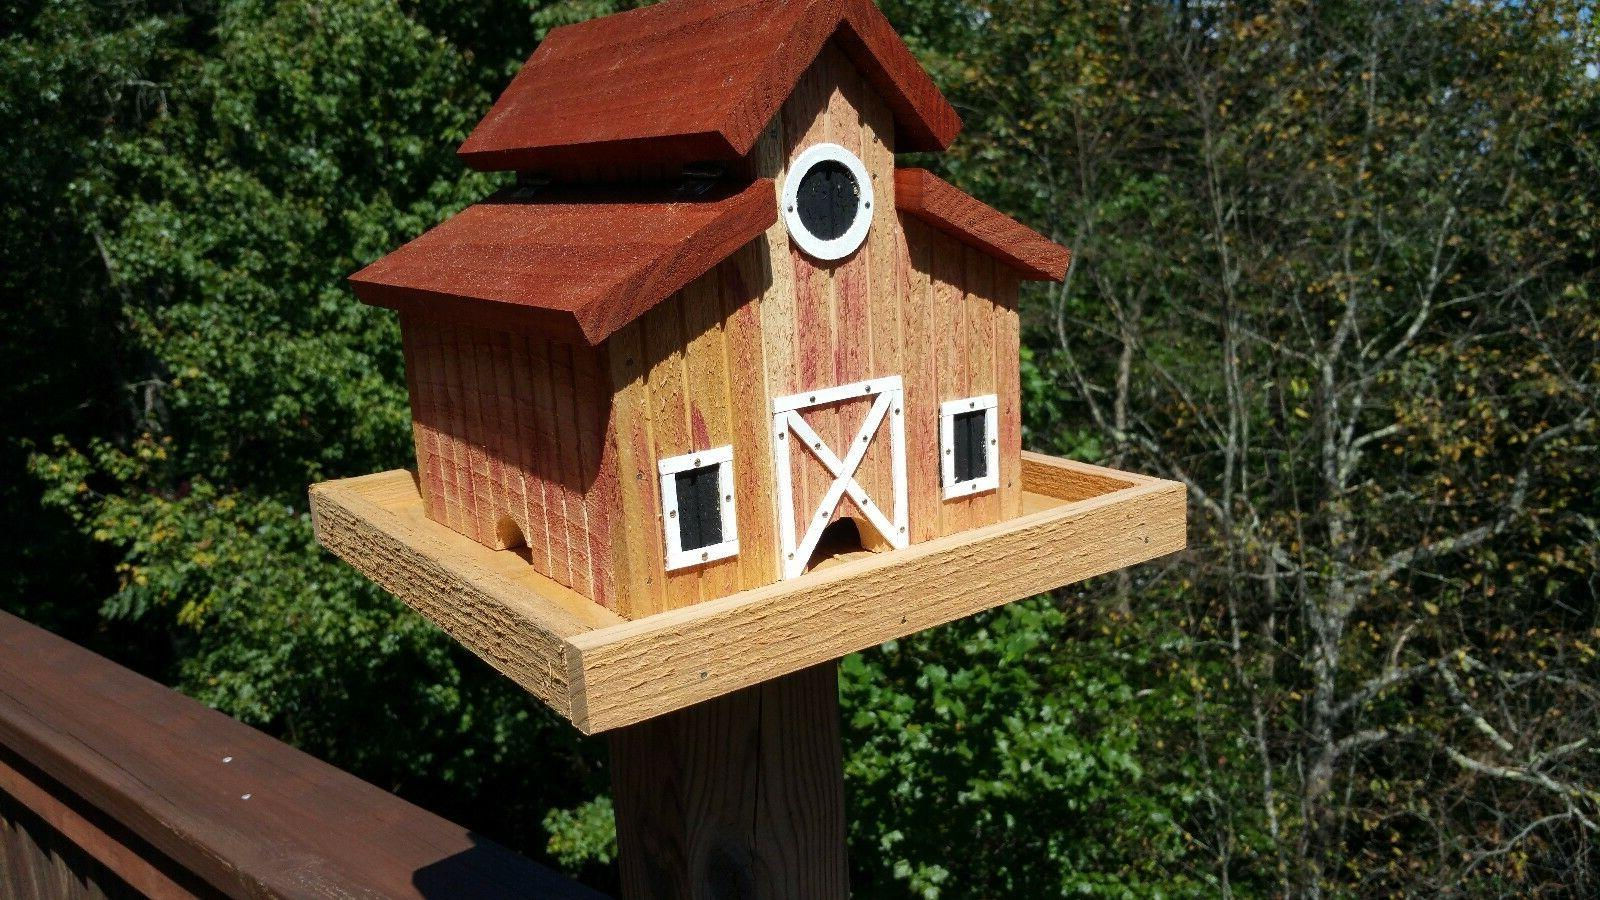 Little Red Barn Bird Feeder Solid Cedar Wood Handcrafted in